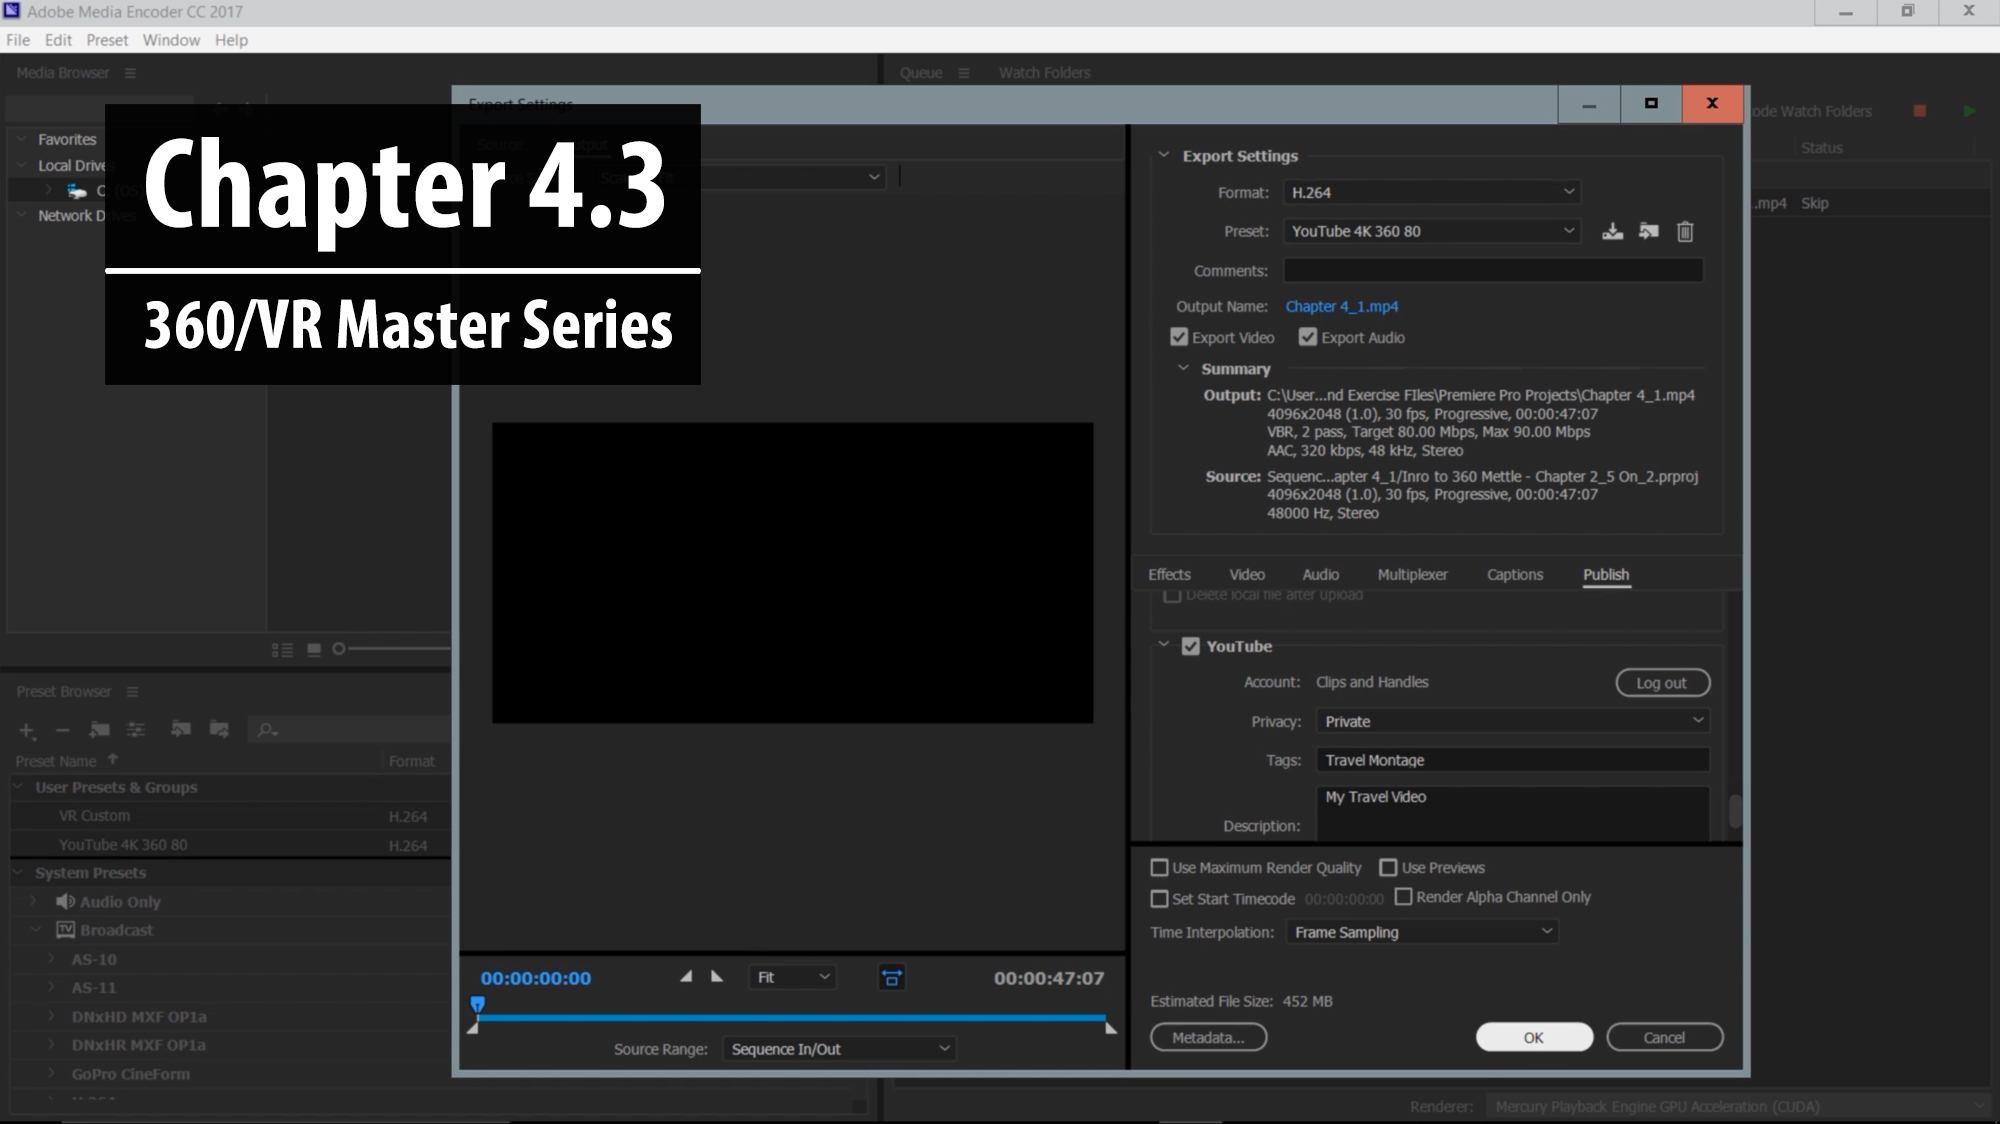 Chapter-4-3-360-VR-Master-Series